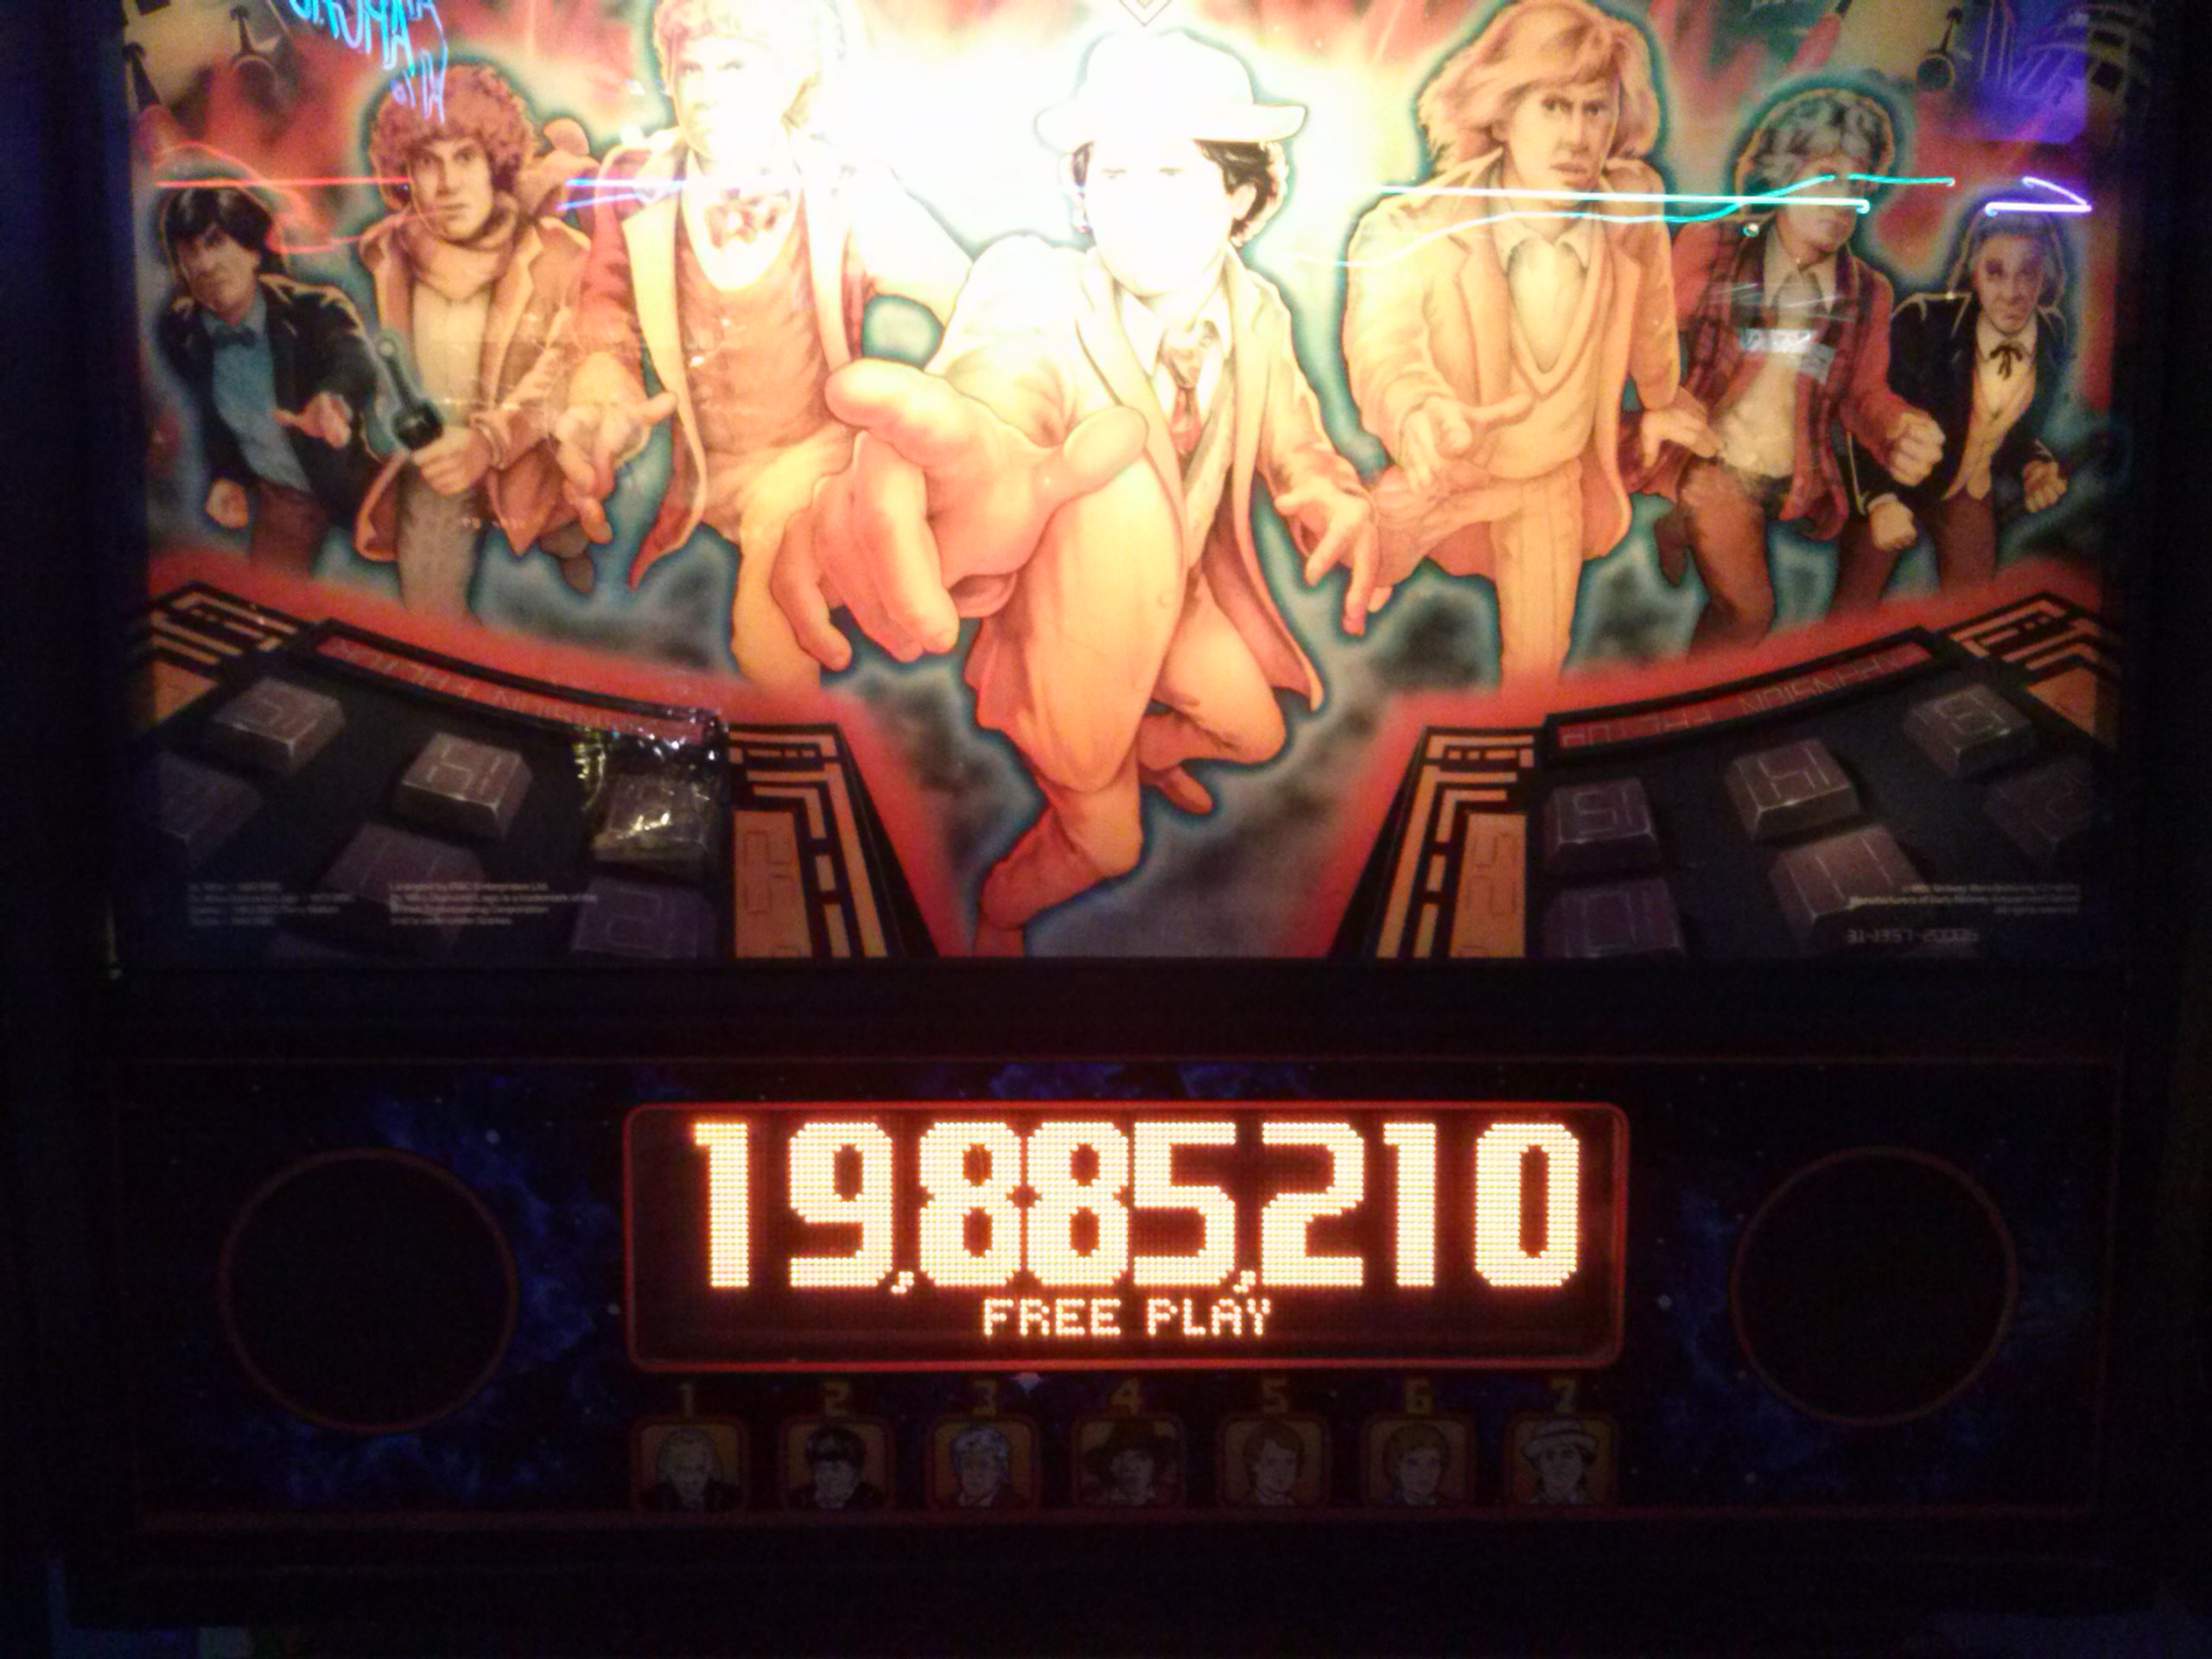 nester: Doctor Who (Pinball: 3 Balls) 19,885,210 points on 2014-05-21 18:20:07